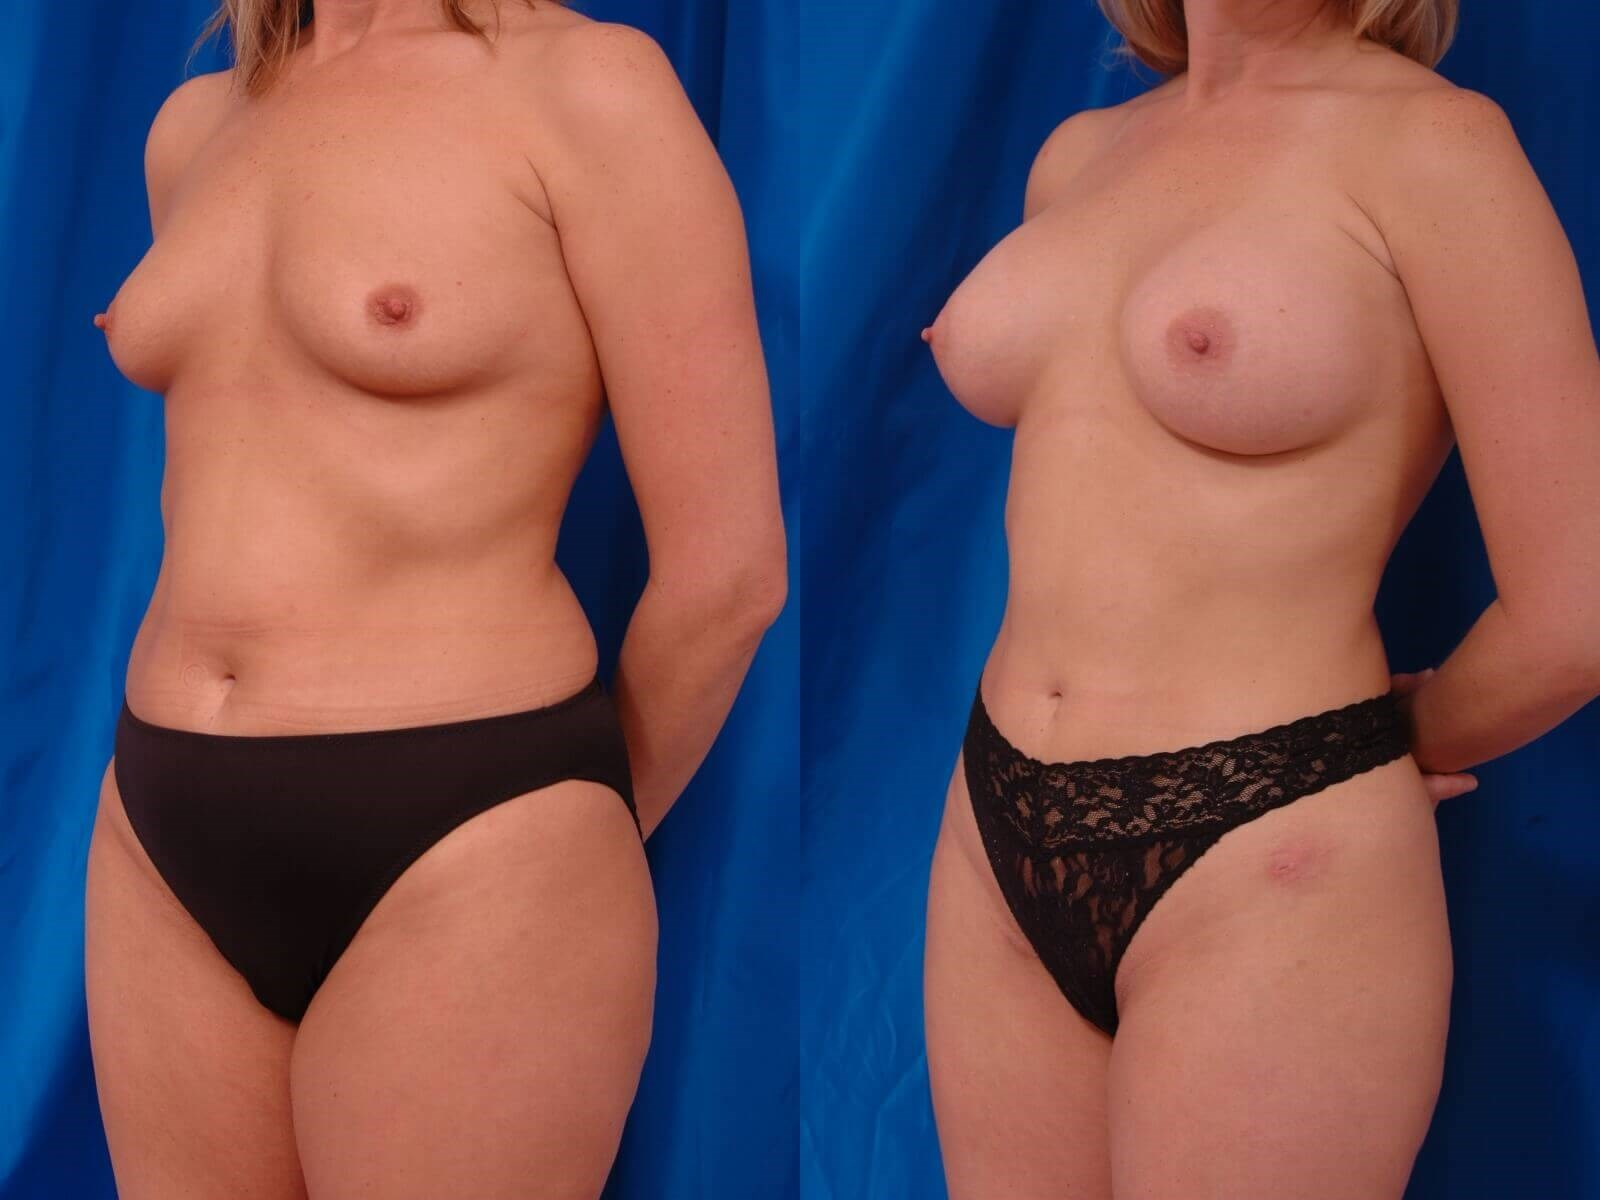 Breast Augmentation, Lipo Before/After